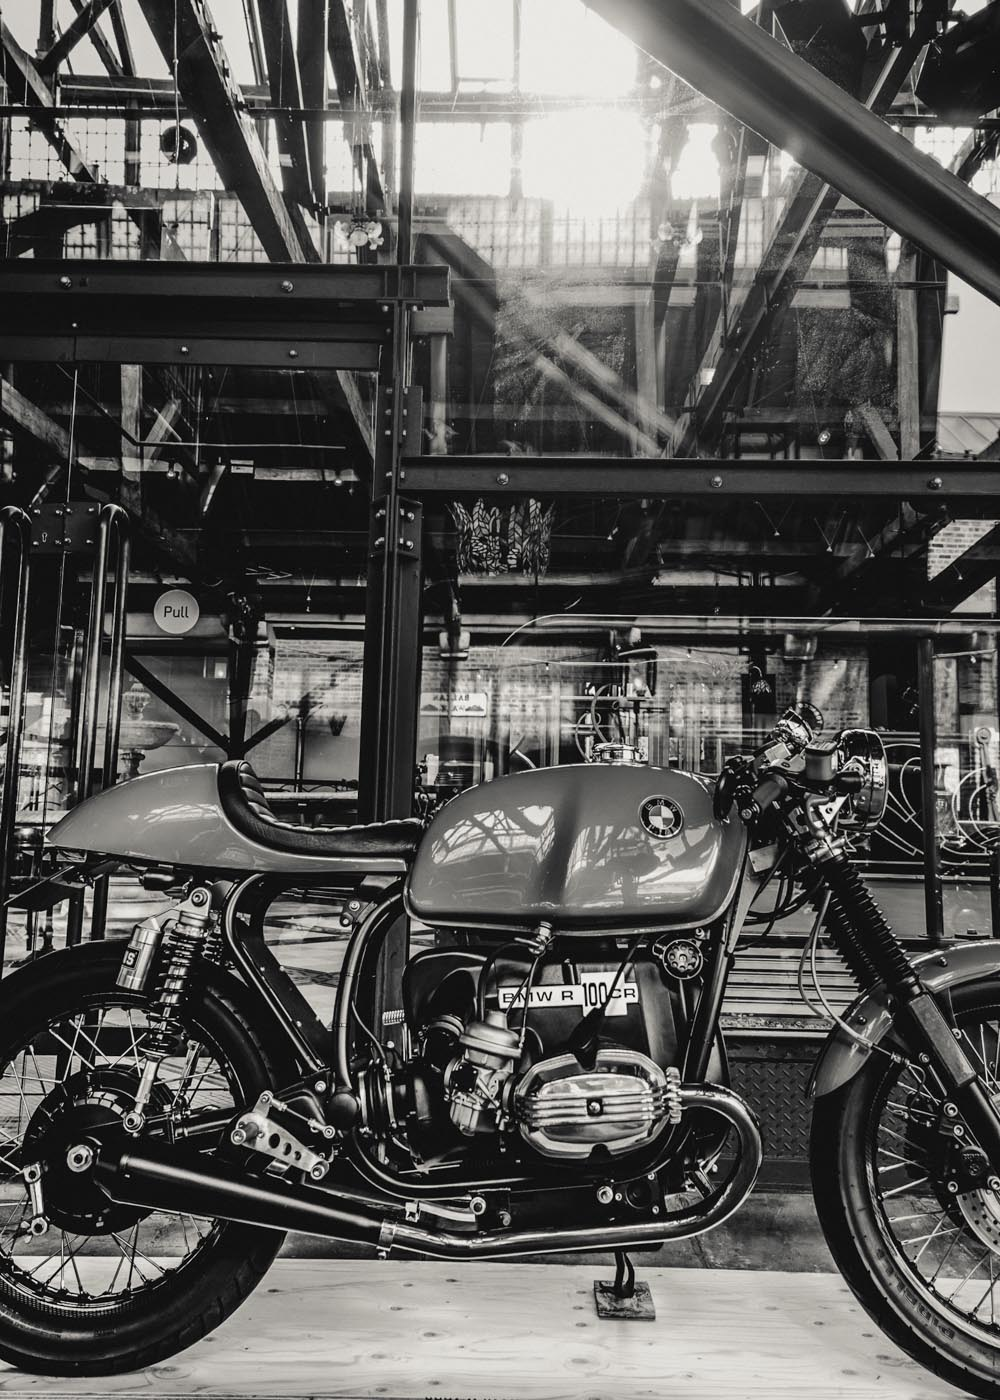 D Exhibition In London : Motorcycle event in london celebrates the custom bike